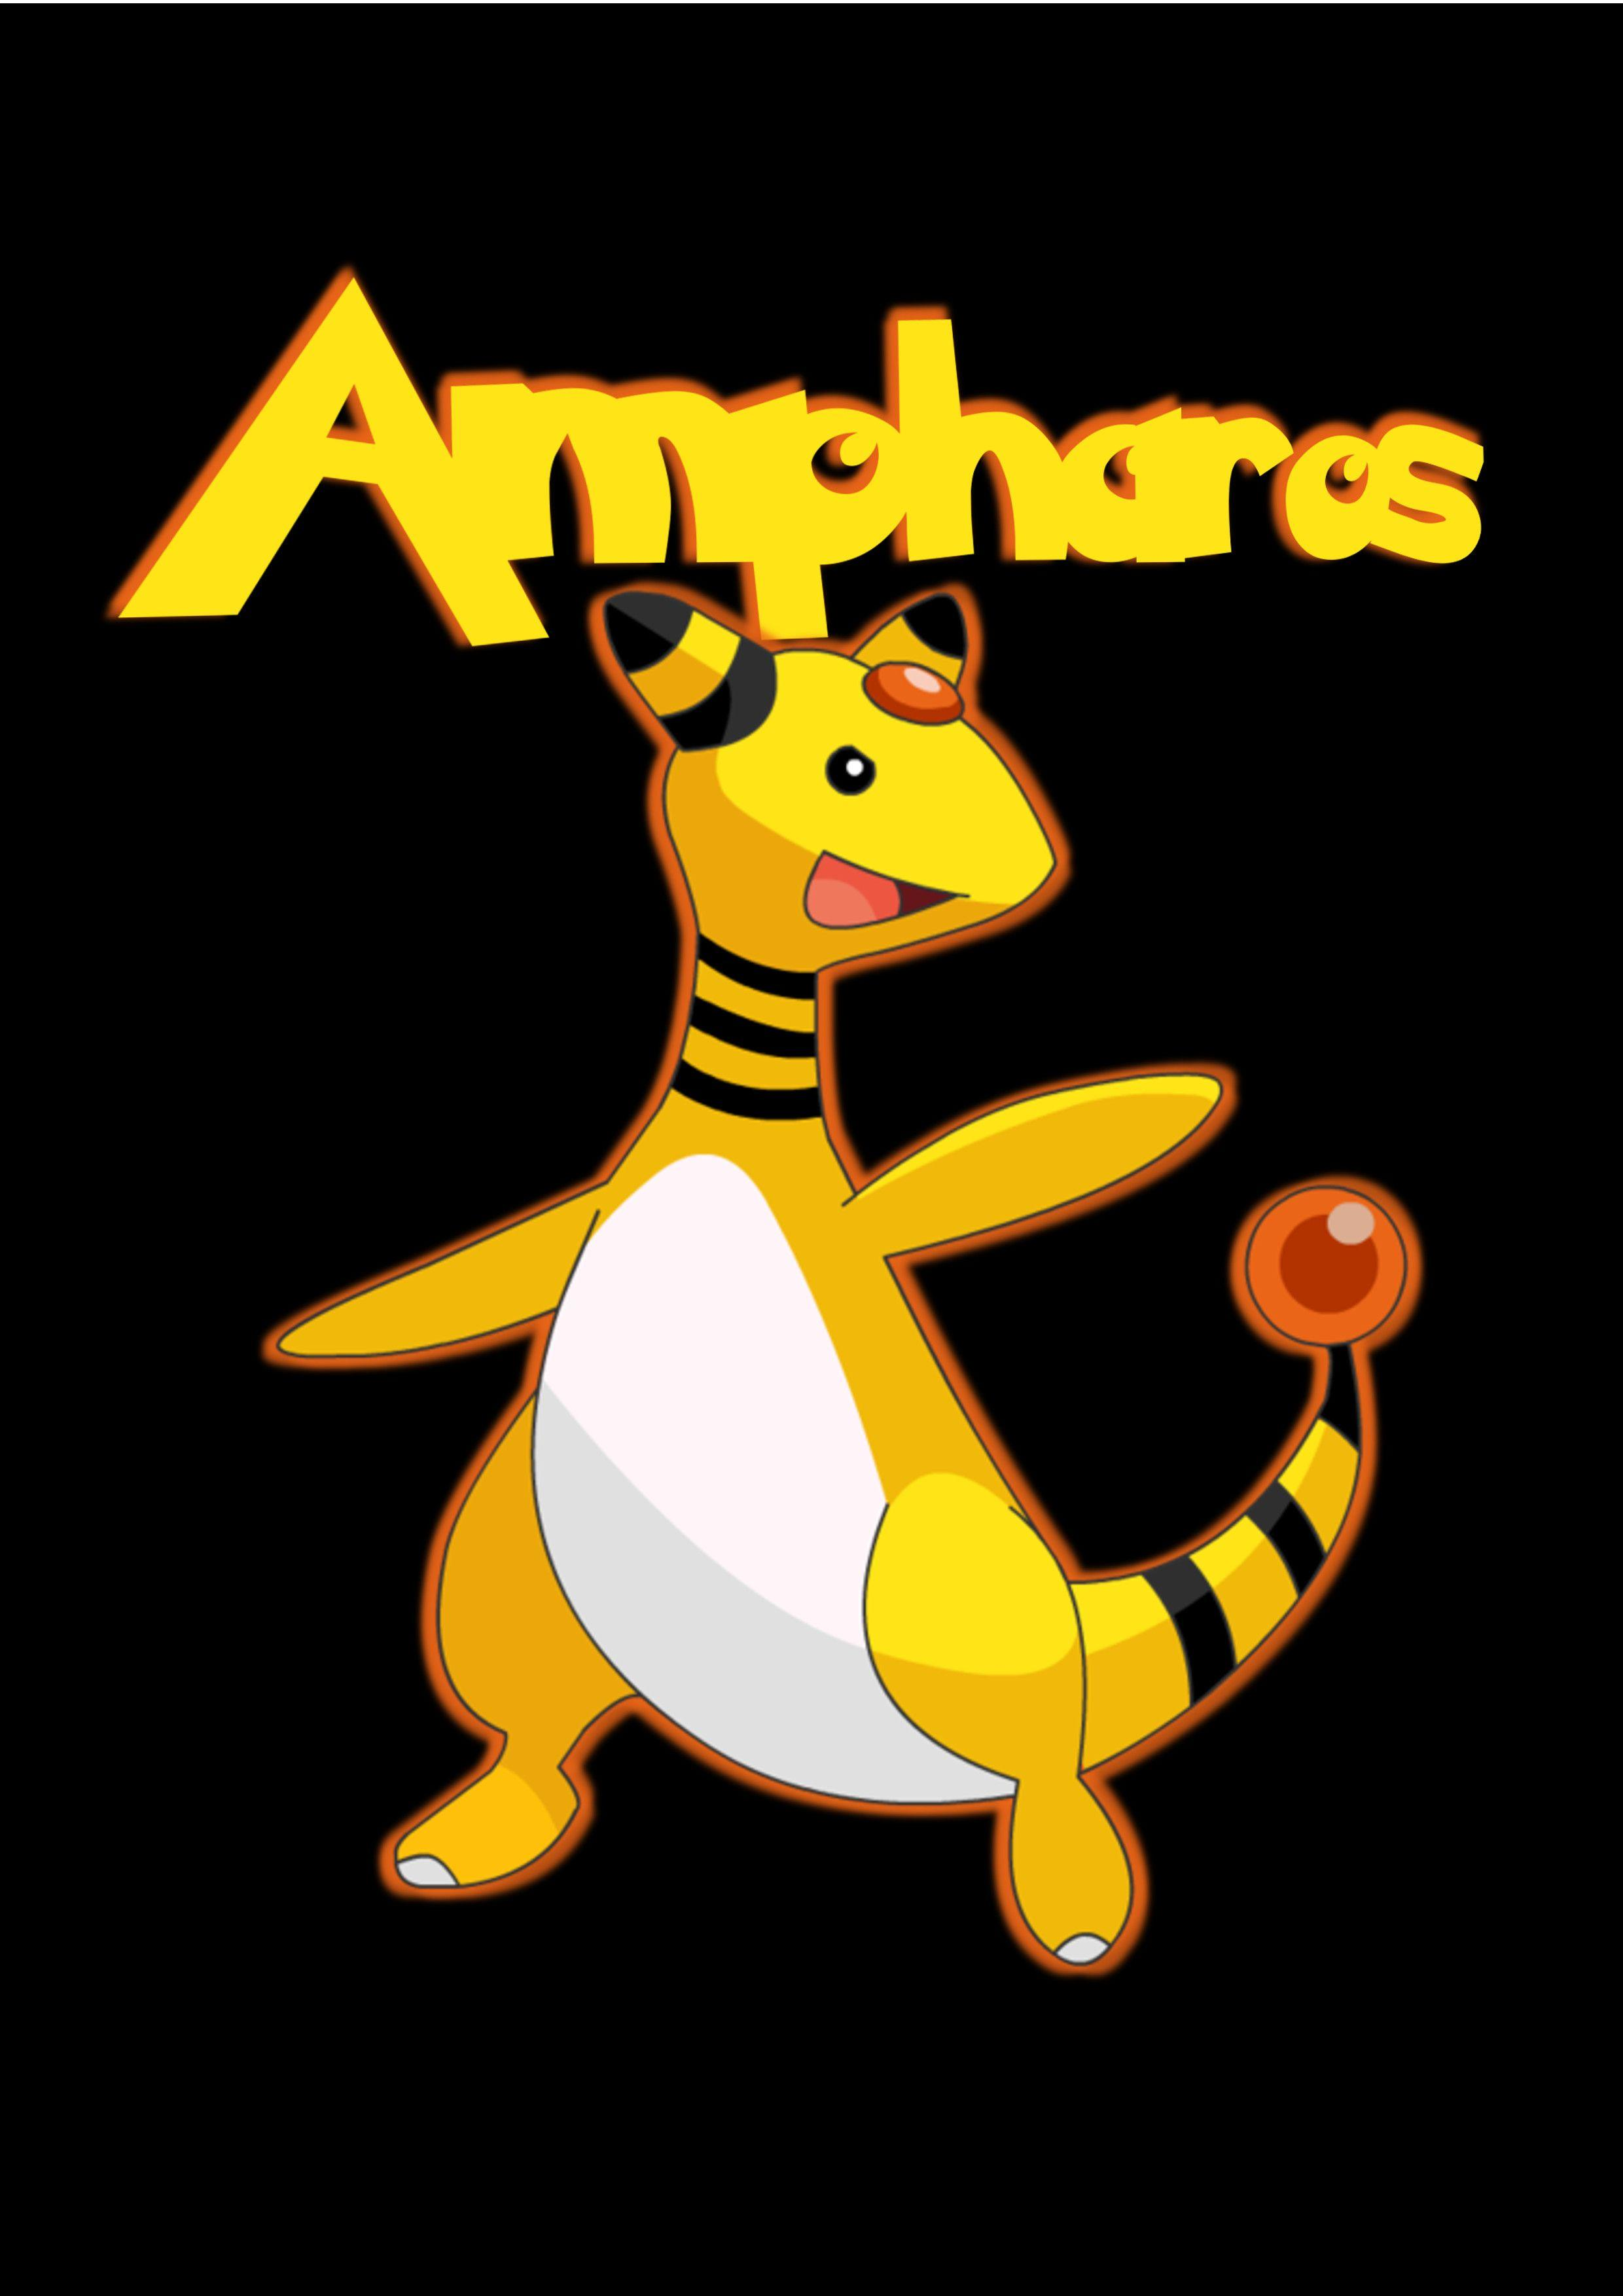 Ampharos HD Wallpapers - Wallpaper Cave